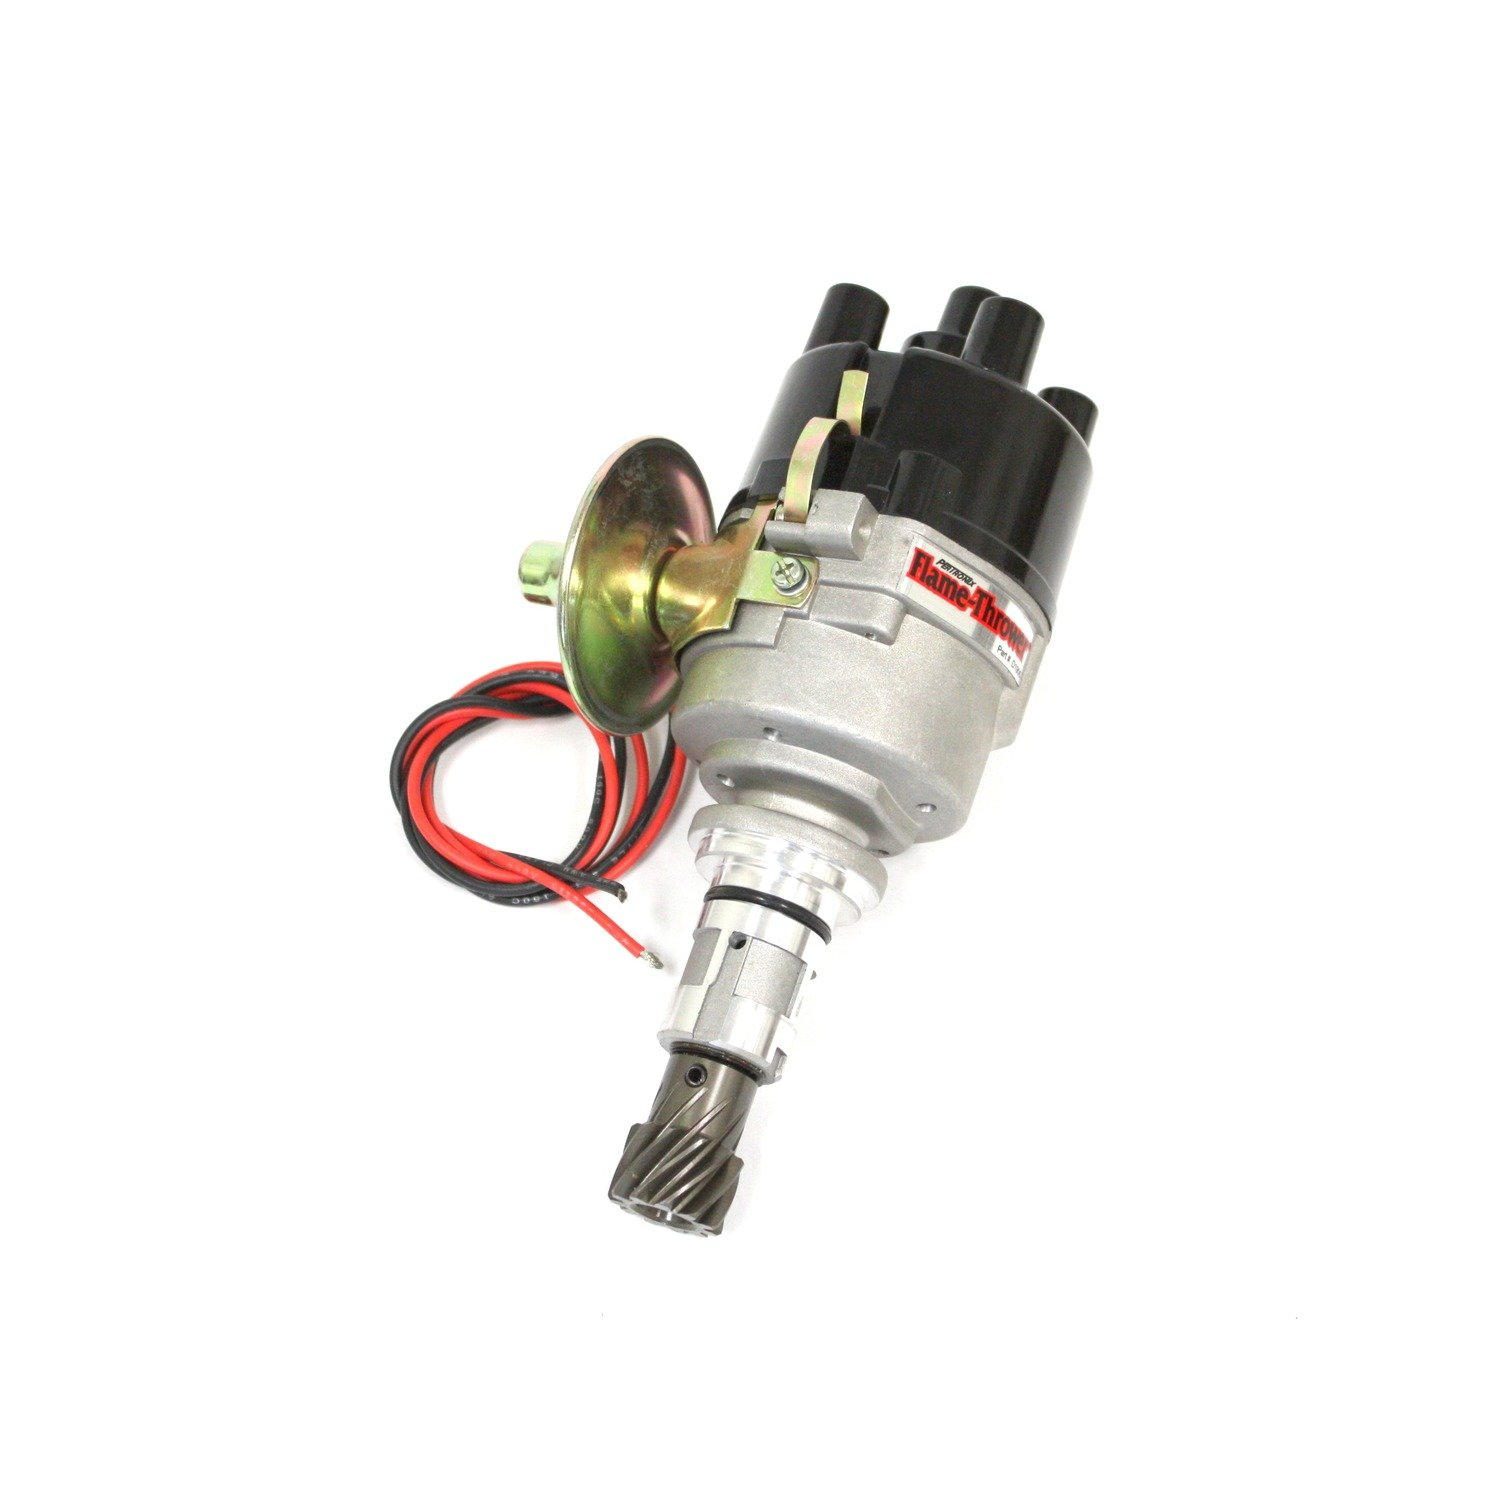 Pertronix D190600 Flame-Thrower Plug and Play Vacuum Advance Top Exit Cap Cast Electronic Distributor with Ignitor II Technology for Ford X-Flow 4 Cylinder Engine